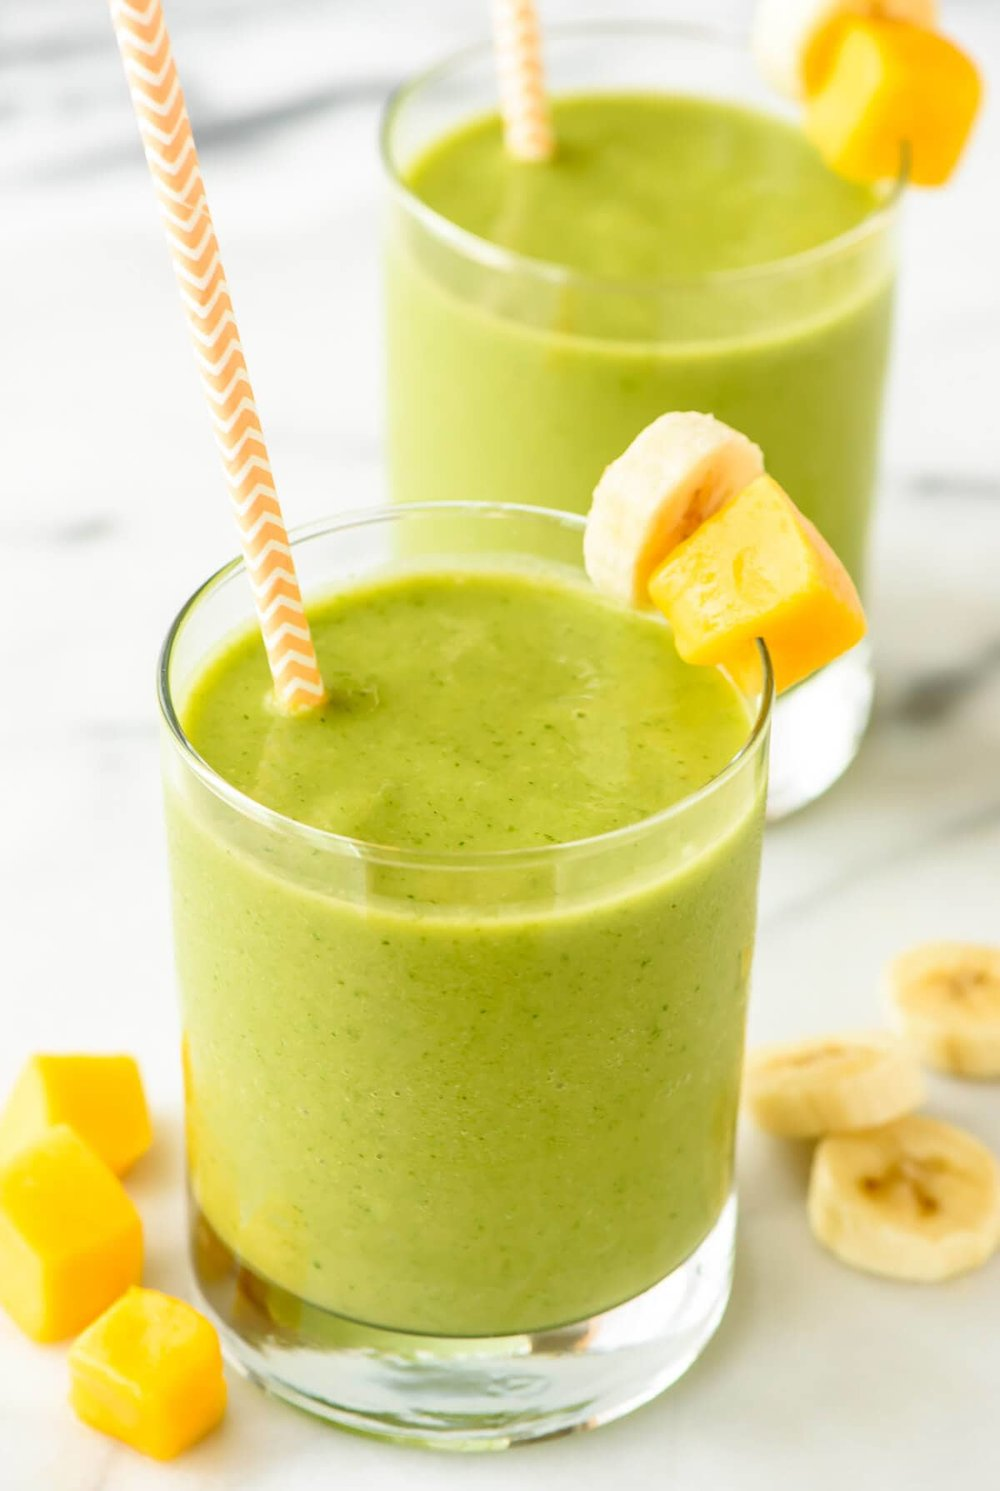 Mango-Green-Smoothie-Recipe.jpg